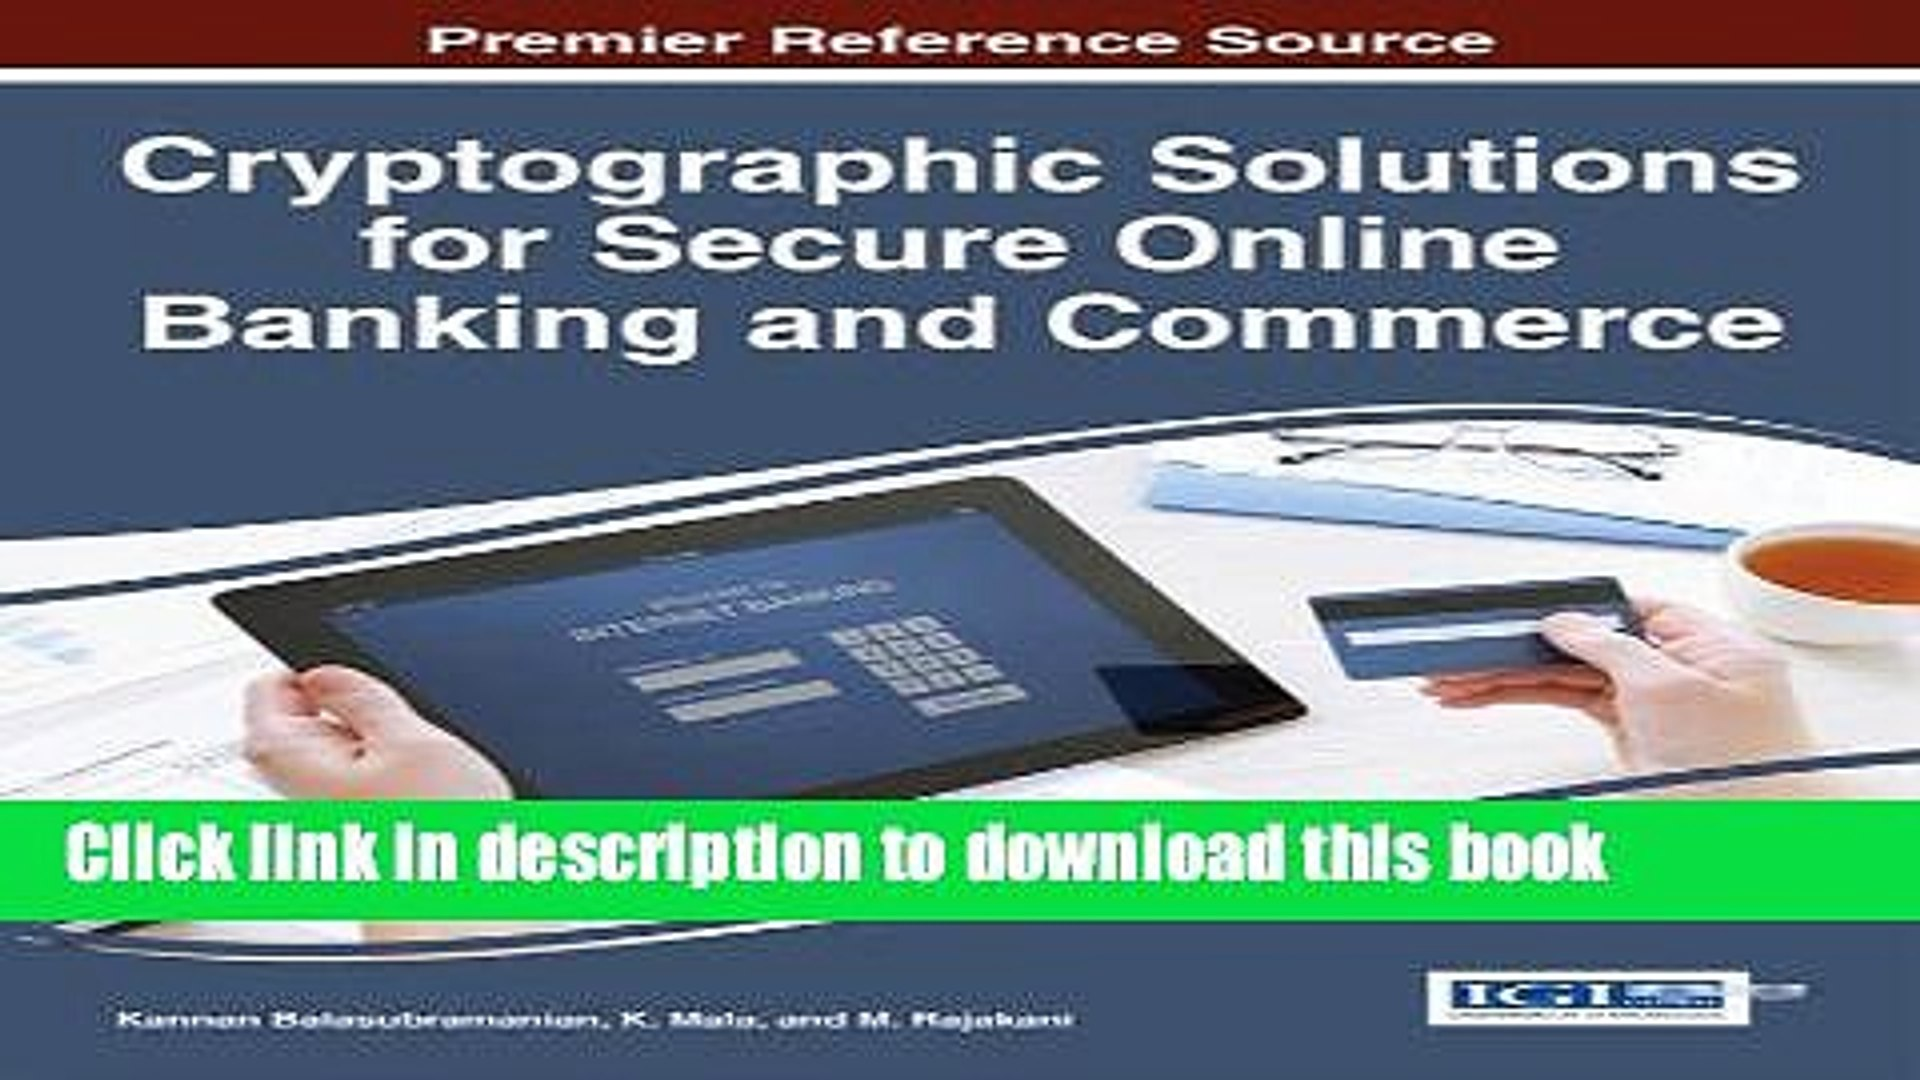 Read Cryptographic Solutions for Secure Online Banking and Commerce PDF Free